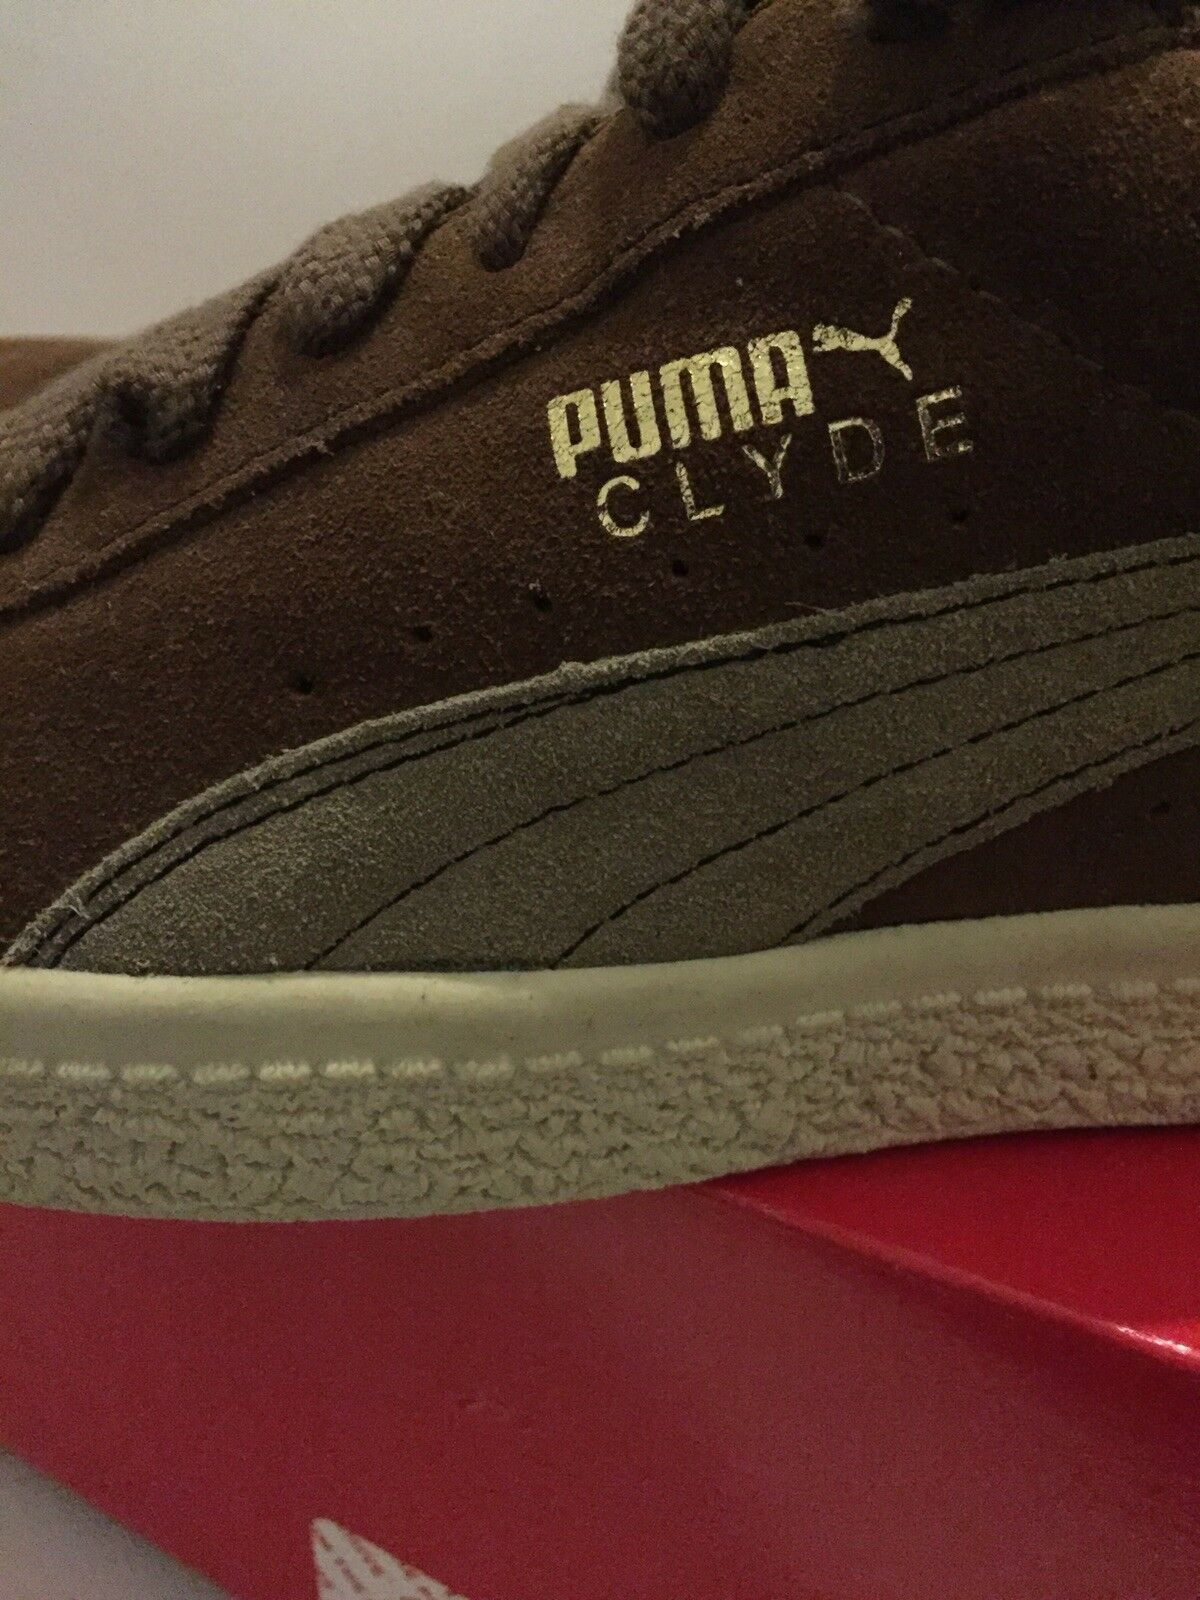 PUMA Clyde US 2005 Edition, marrone, Cord, US Clyde 9.5 898e77